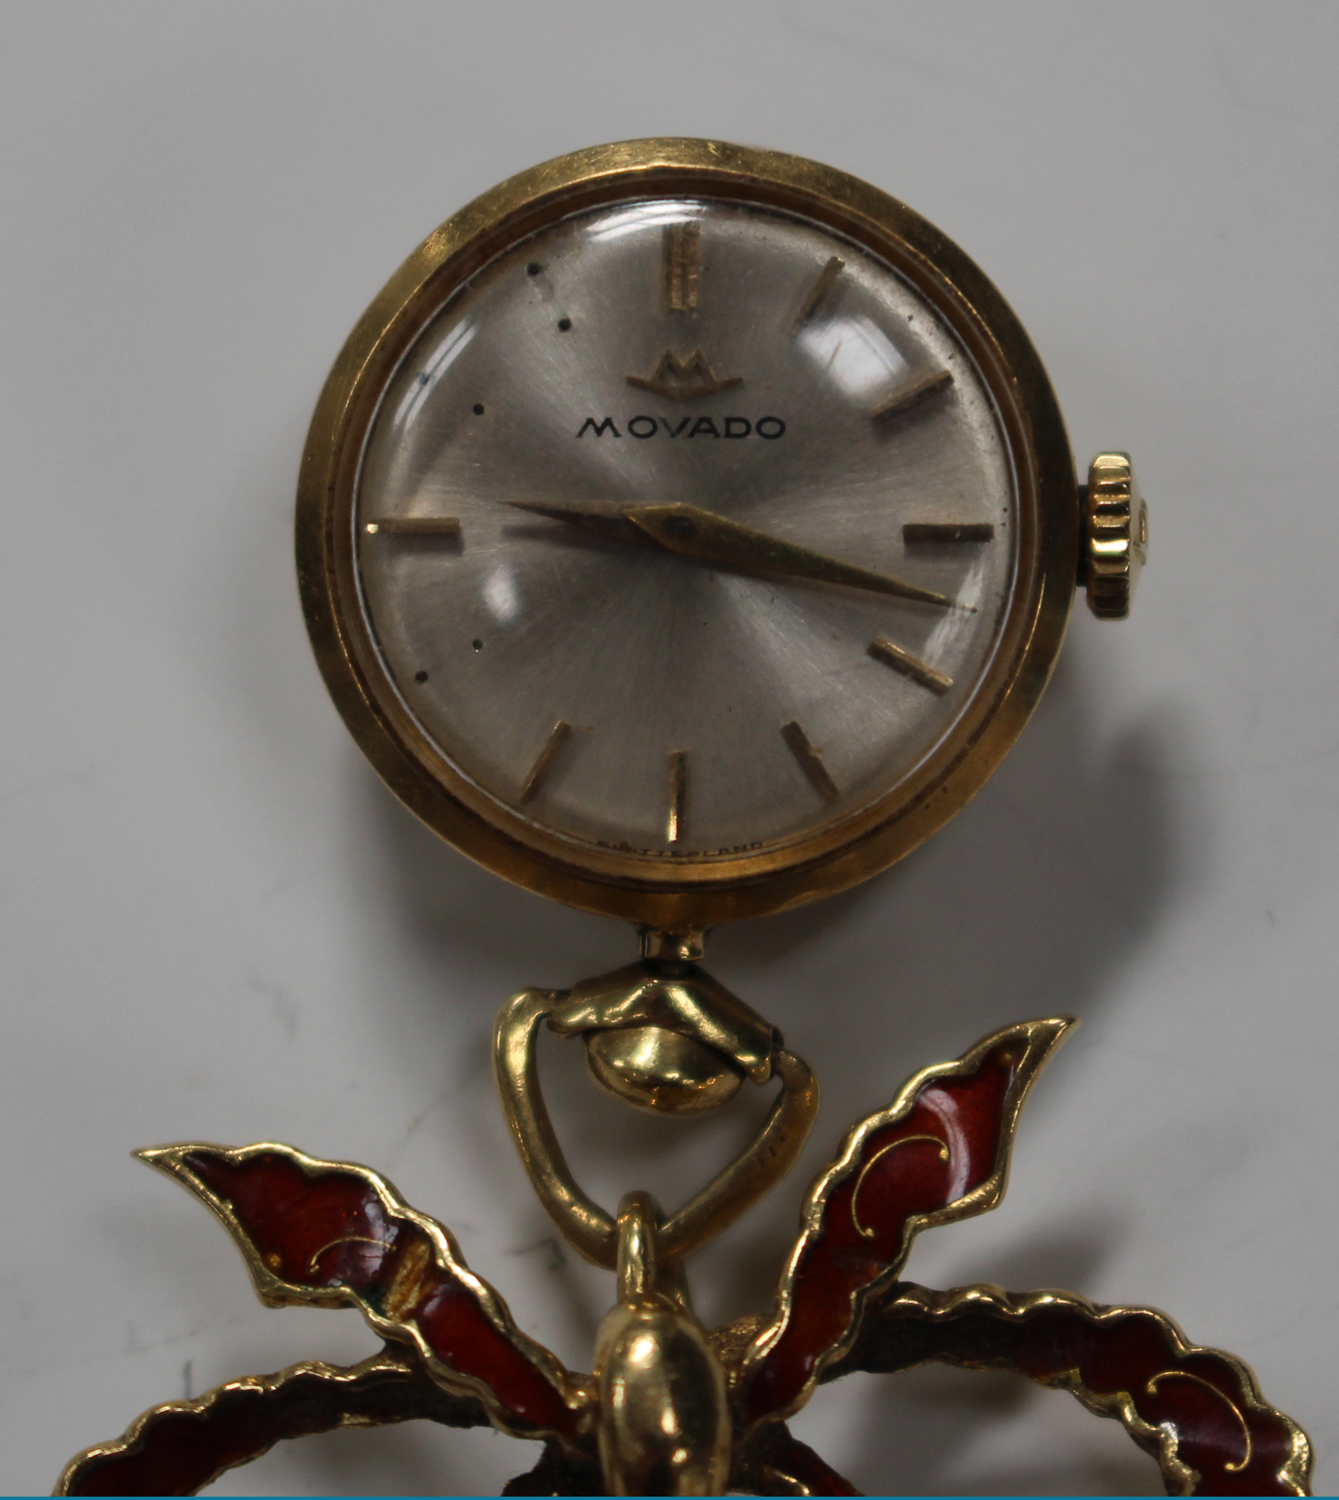 Lot 999 - A Movado 18ct gold and red enamelled pendant watch with a signed jewelled movement, the signed